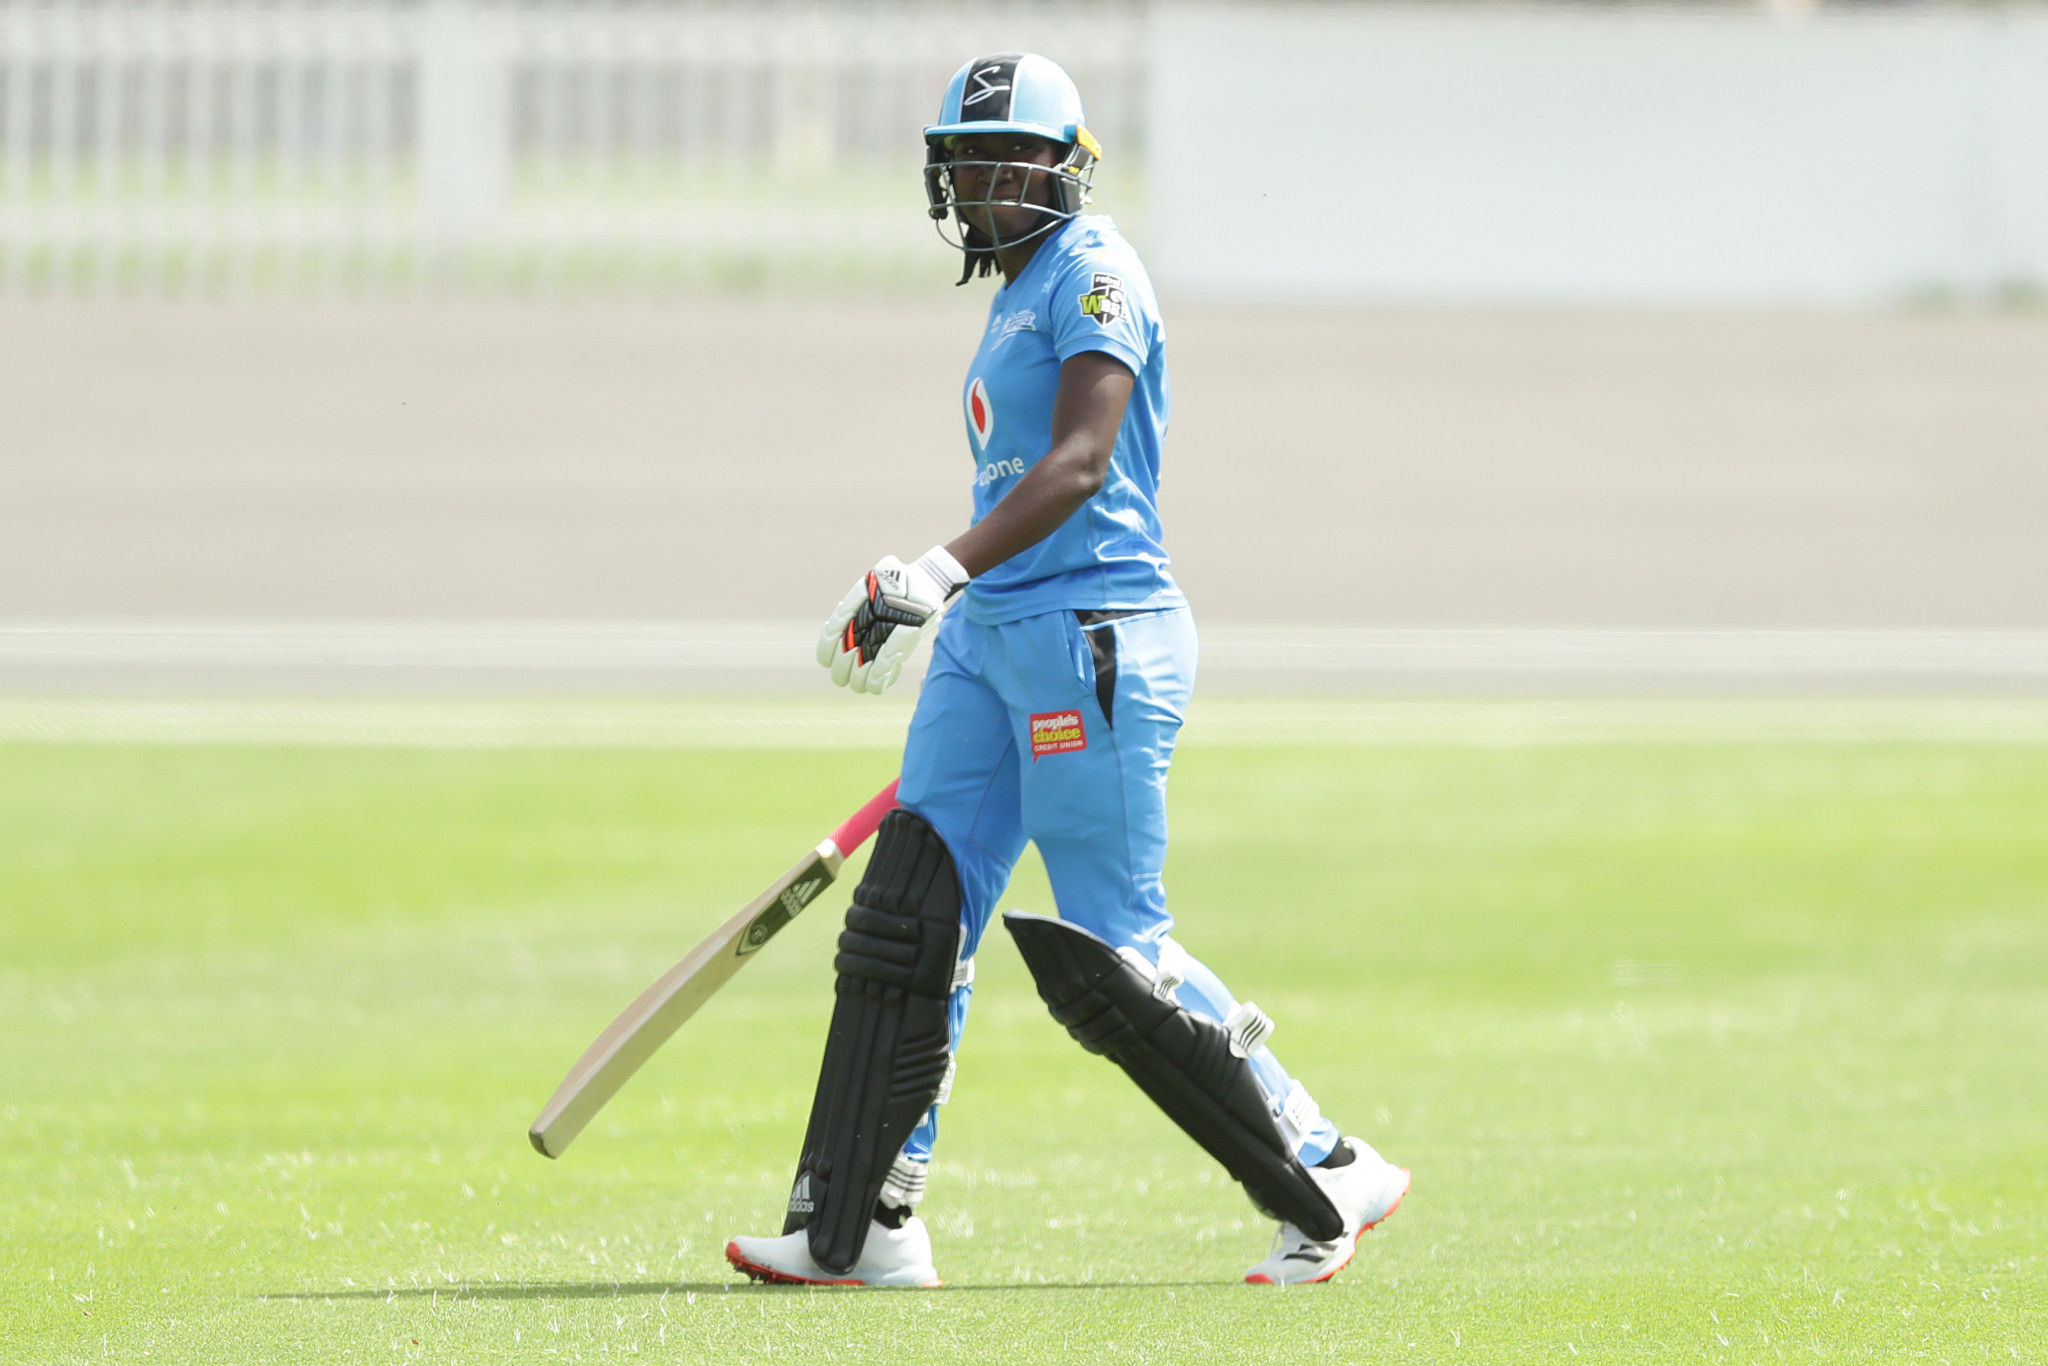 Taylor and Al Hasan named ICC Players of the Month for July